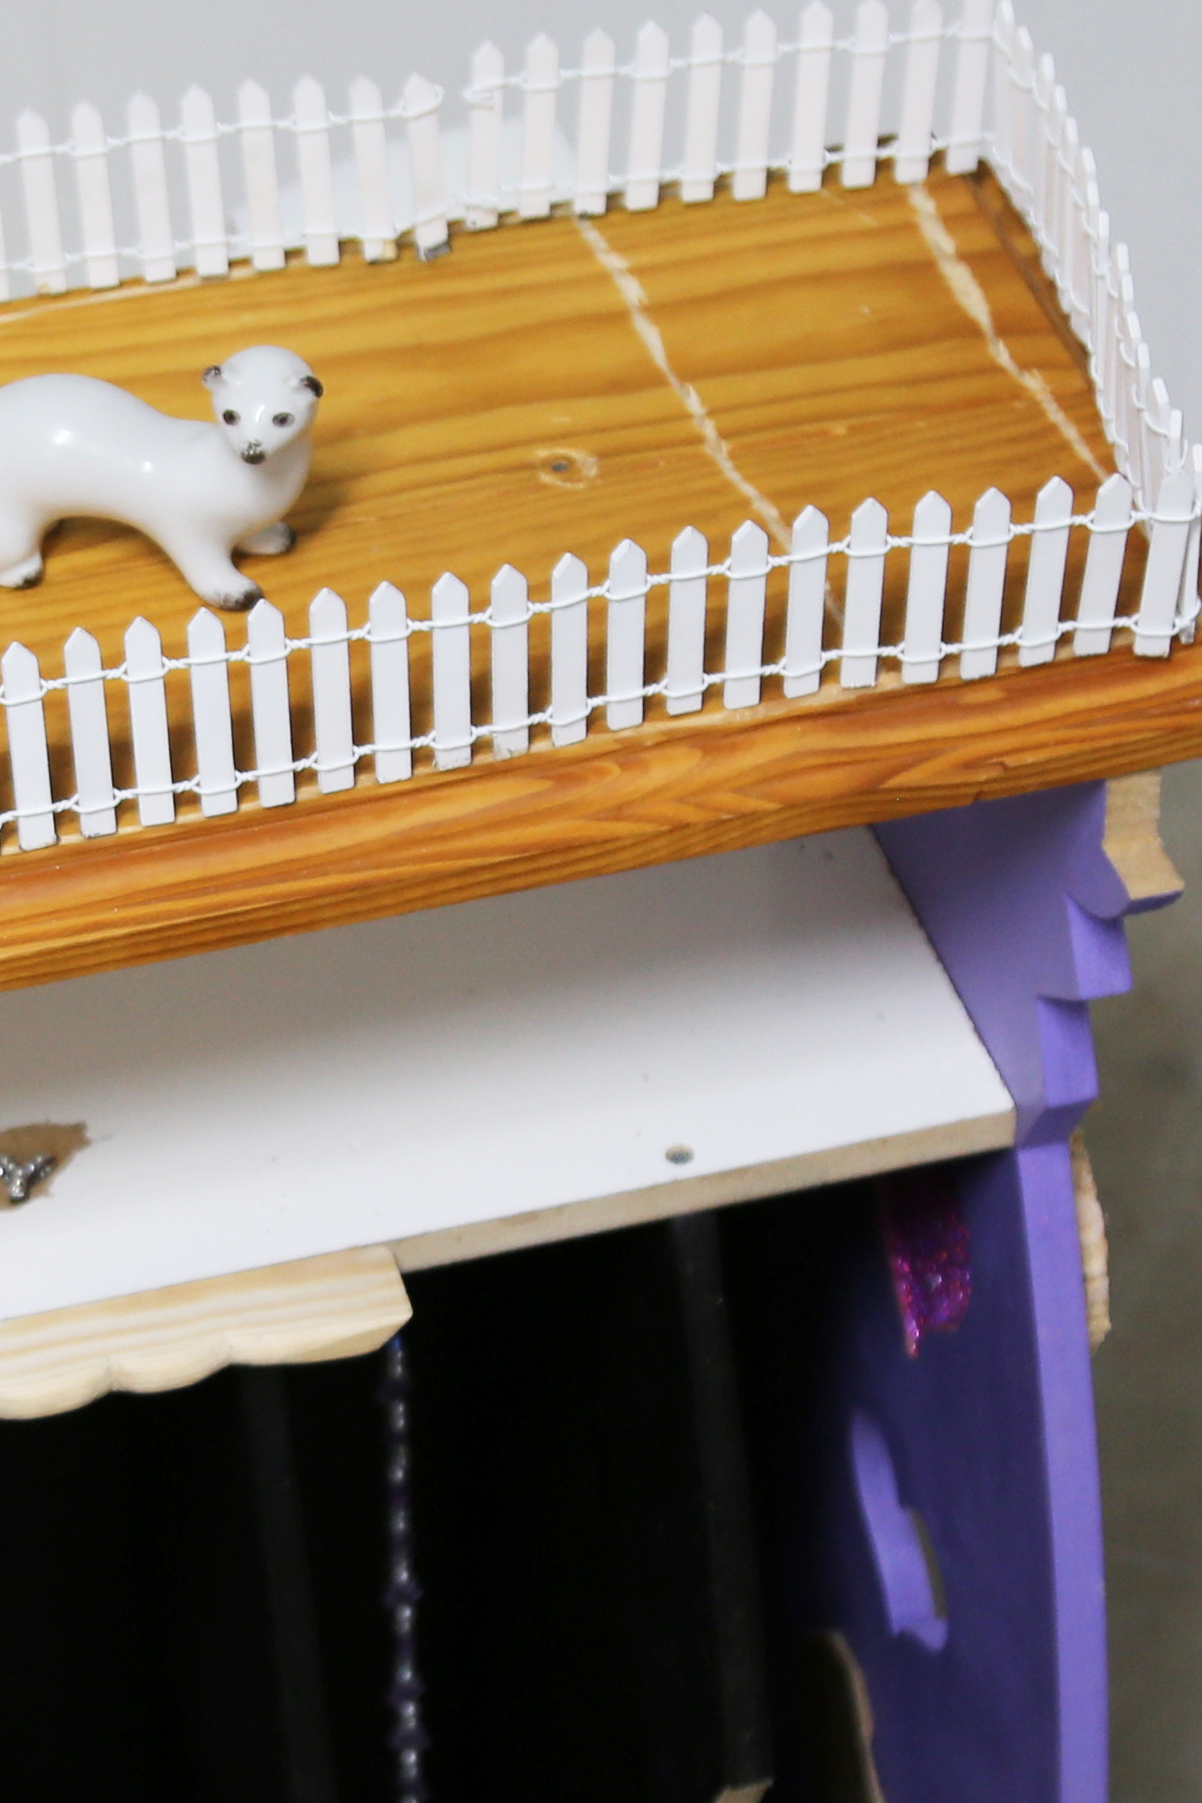 Detail of a white ceramic weasel figurine surrounded by a white model picket fence at the top of the sculpture